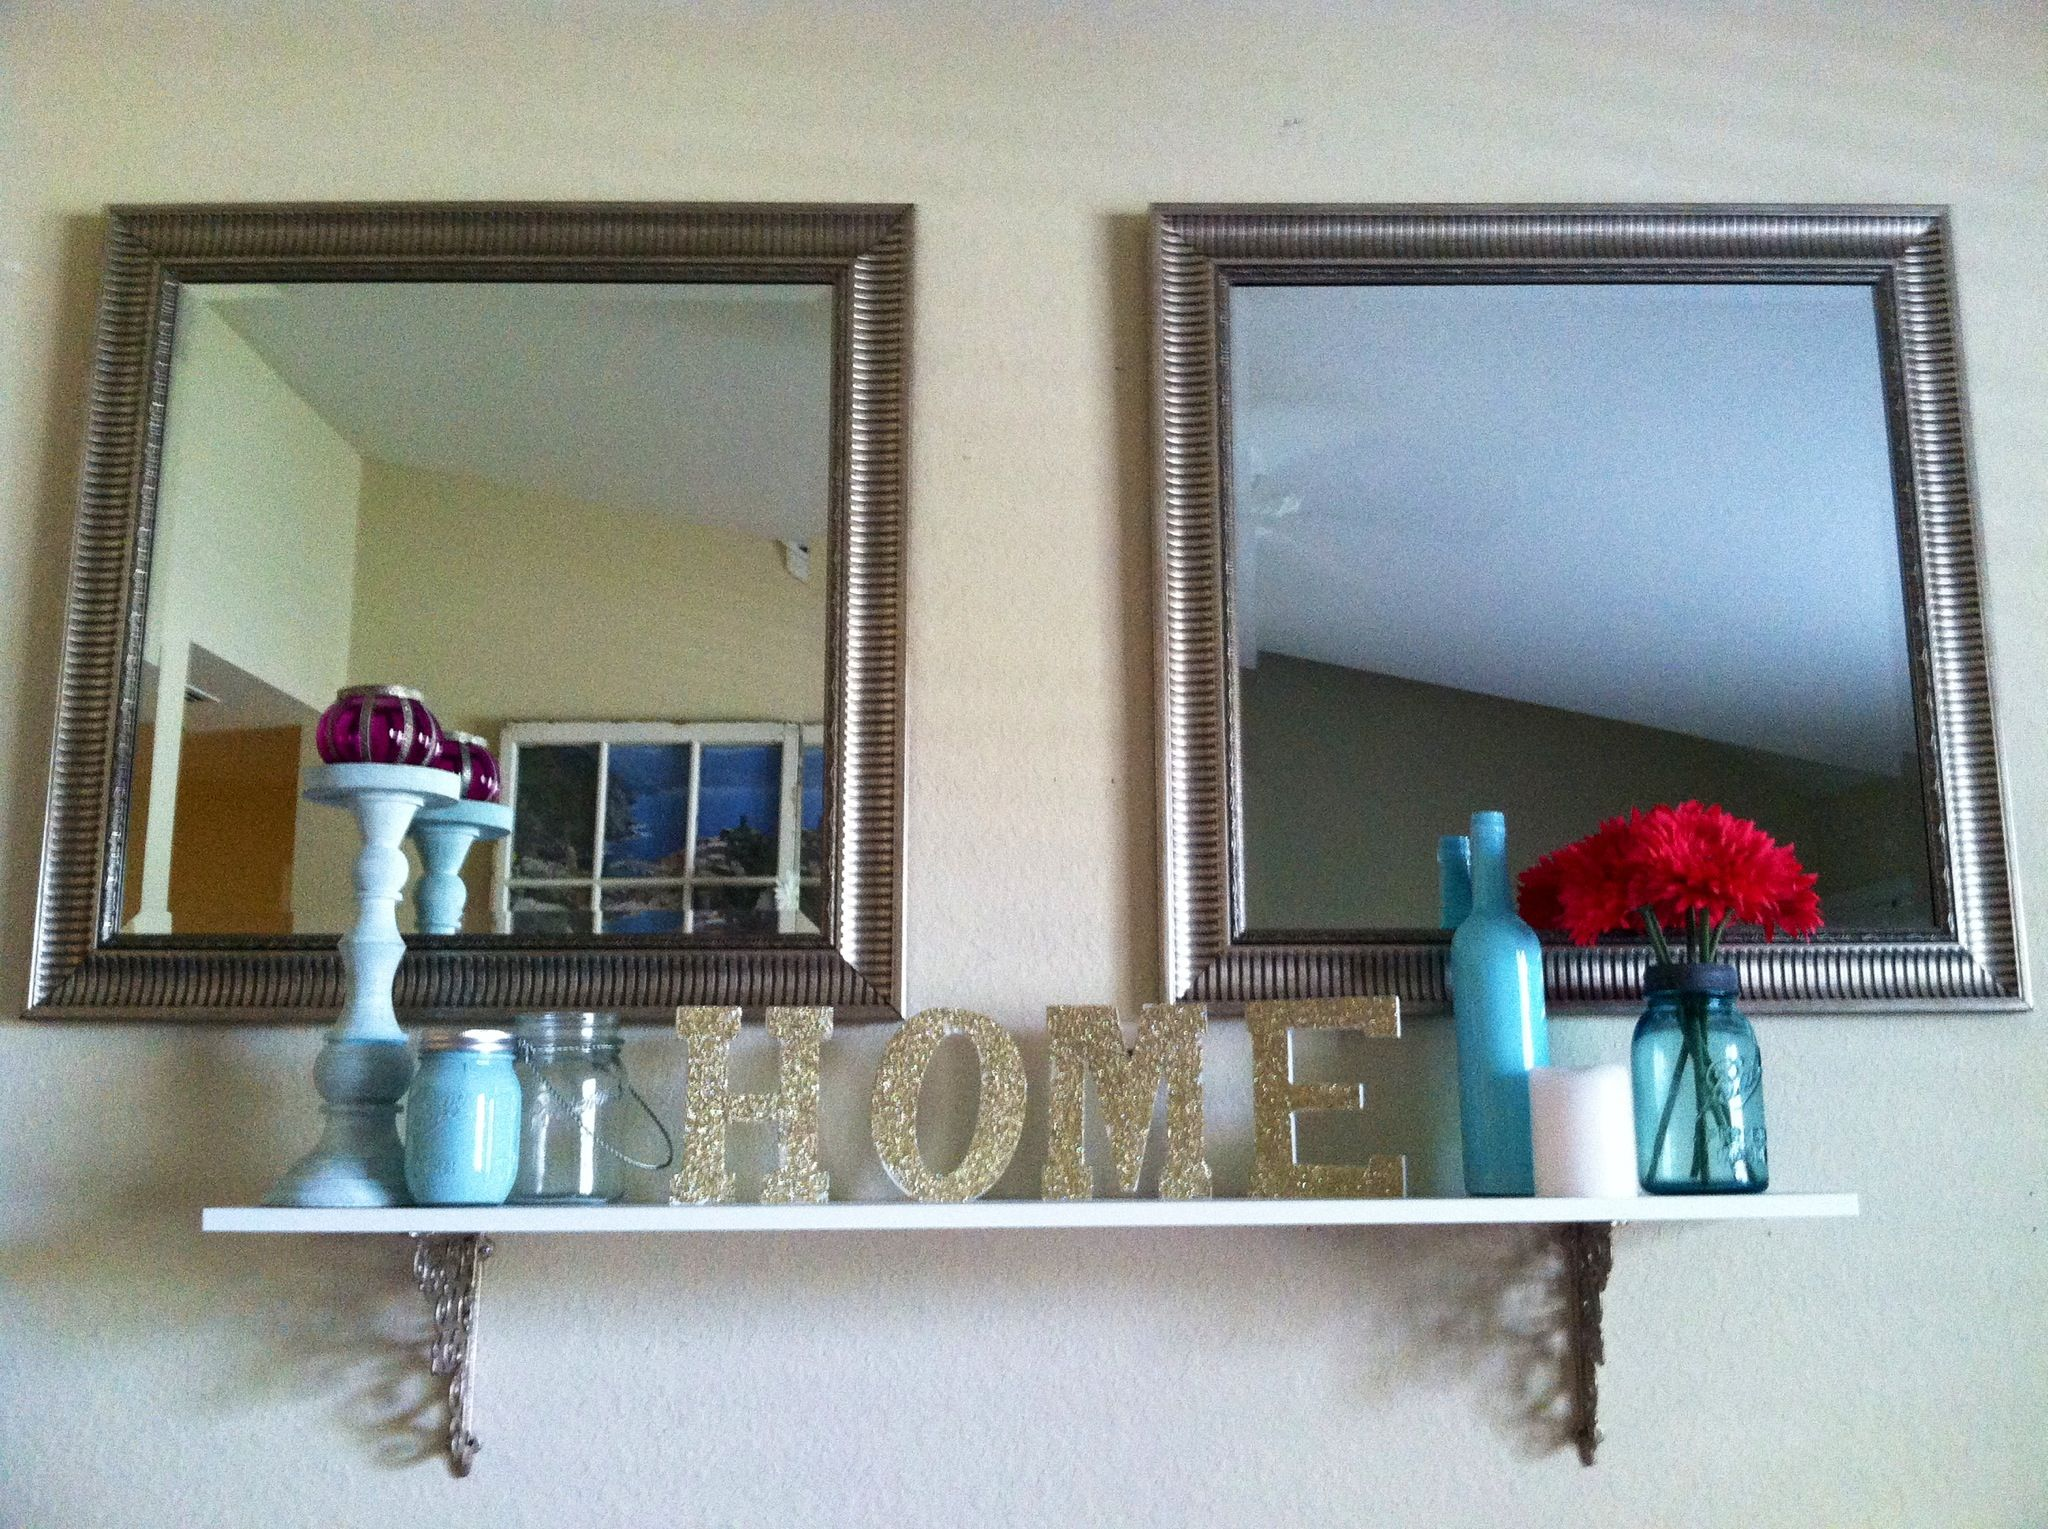 Brackets from hobby lobby and a white slab of wood made a great